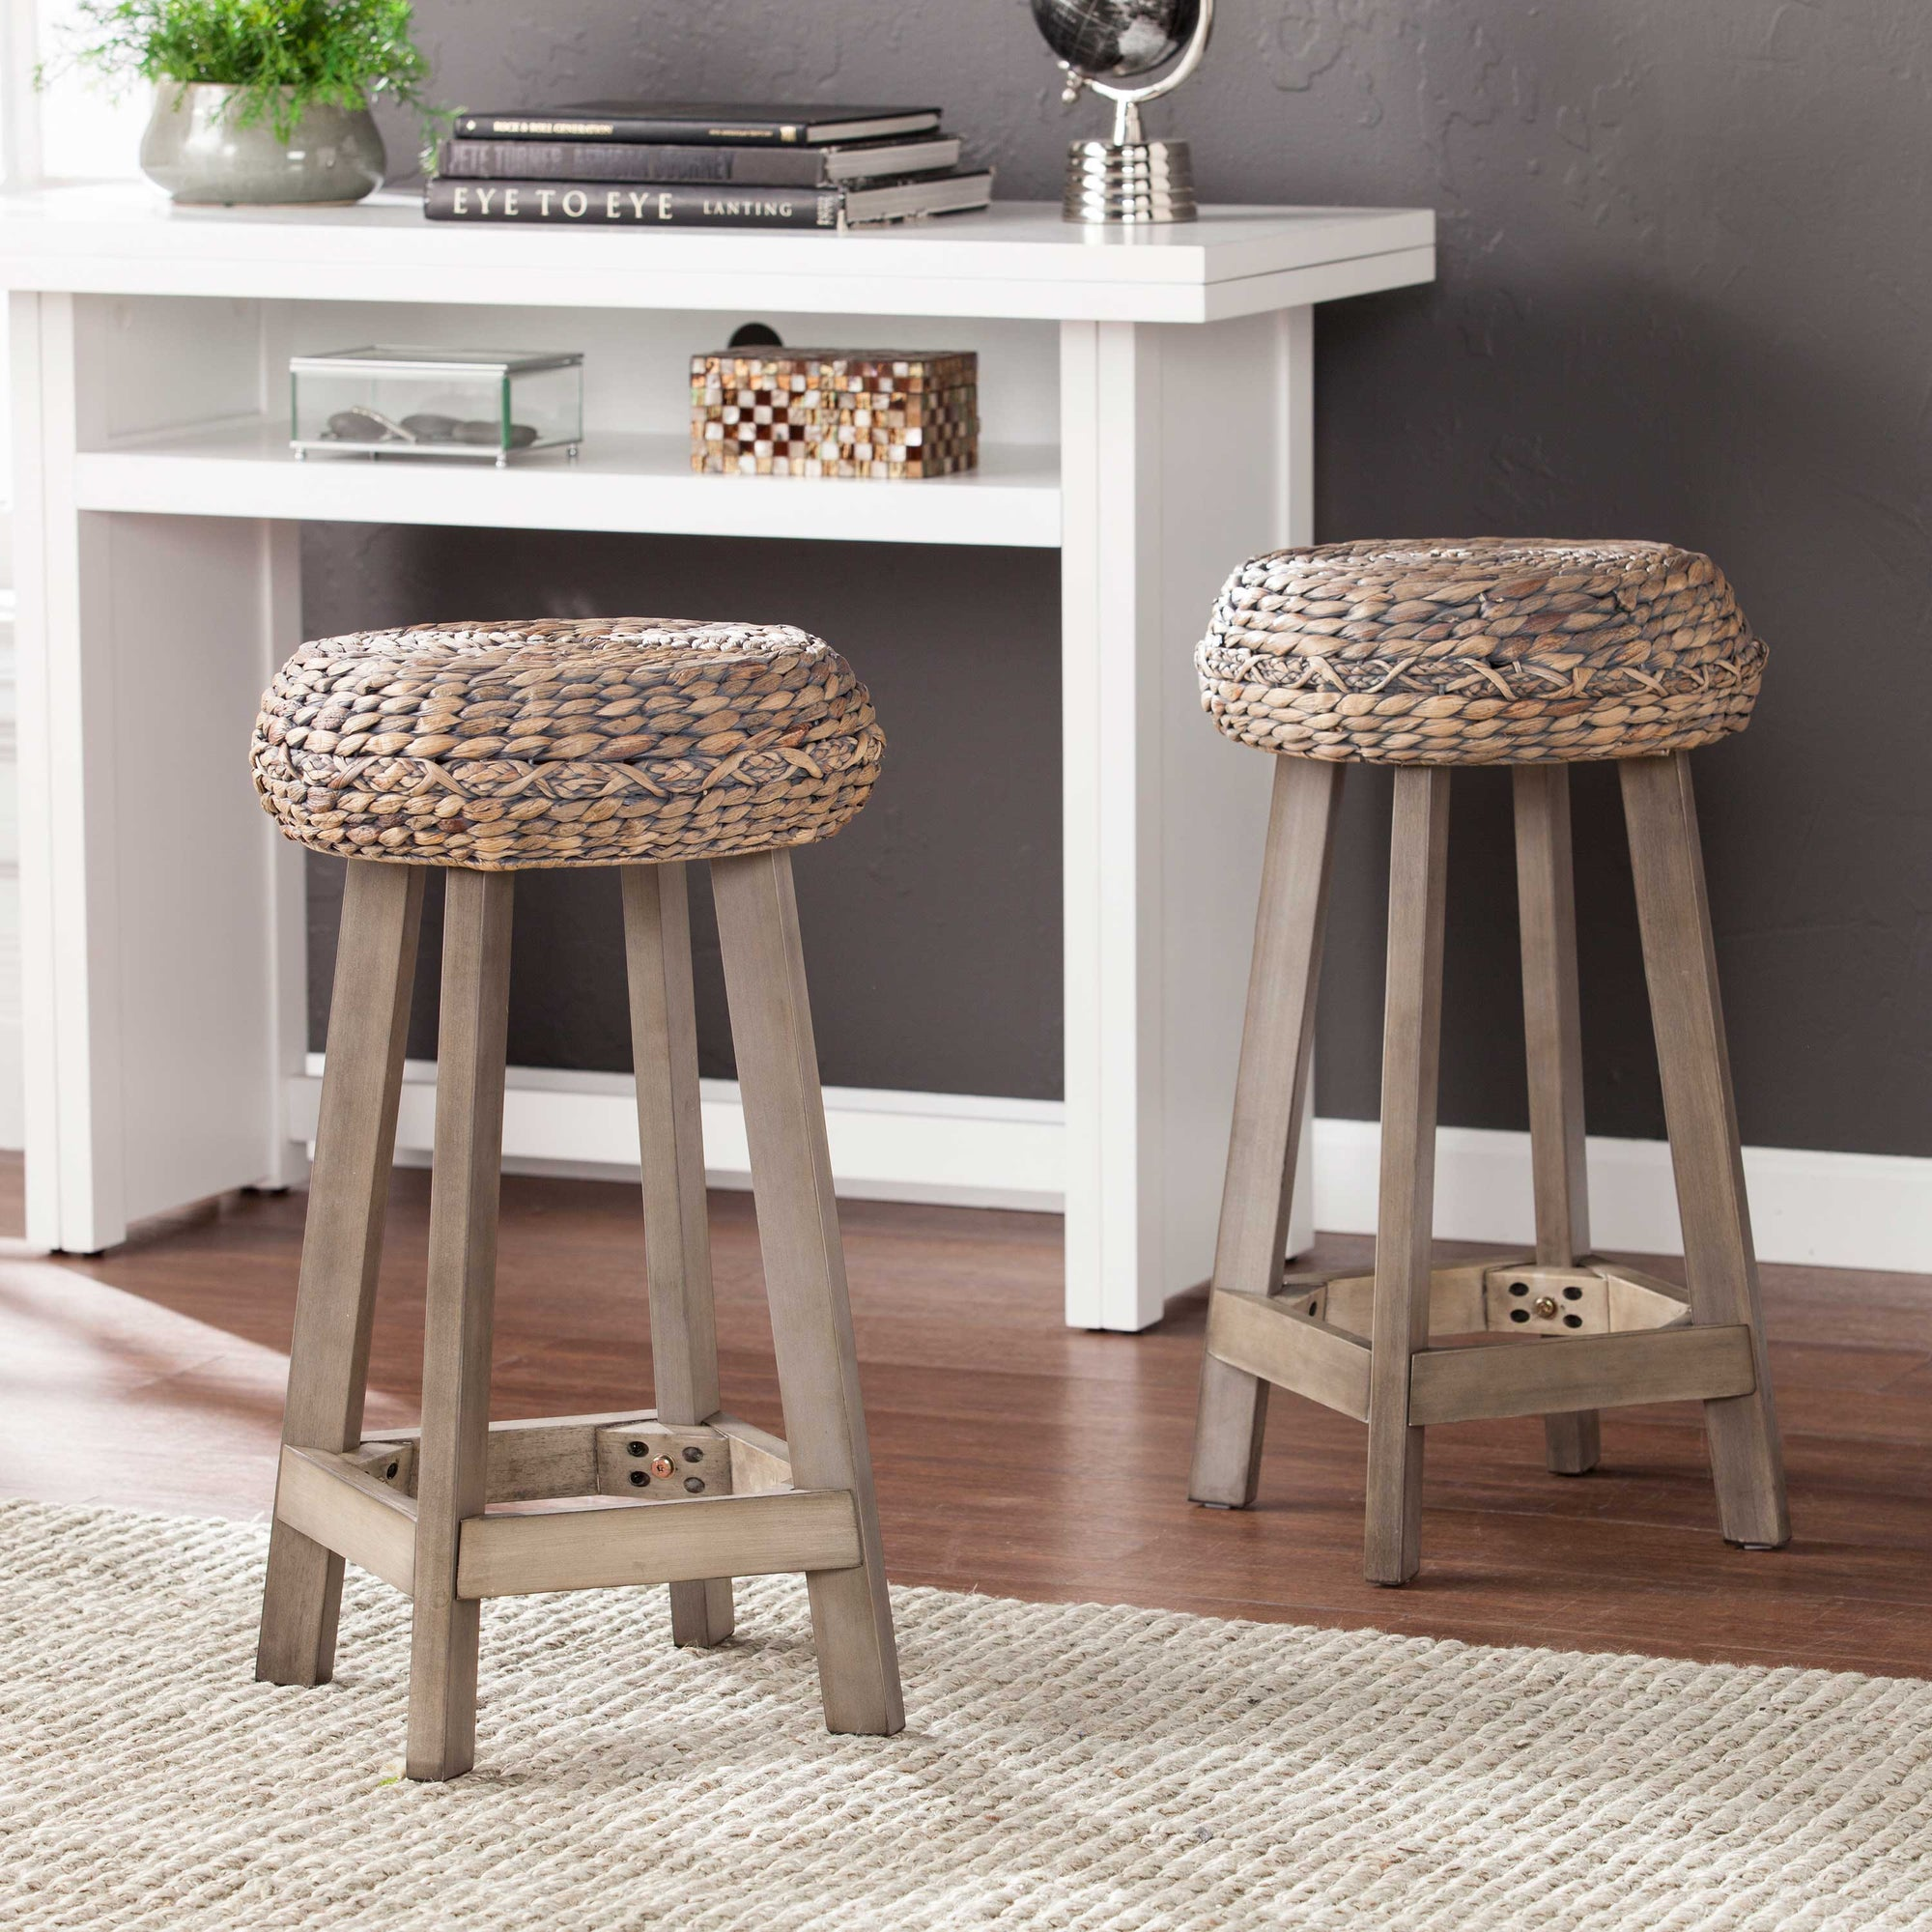 Rutina Backless Round Stools - 2pc Set